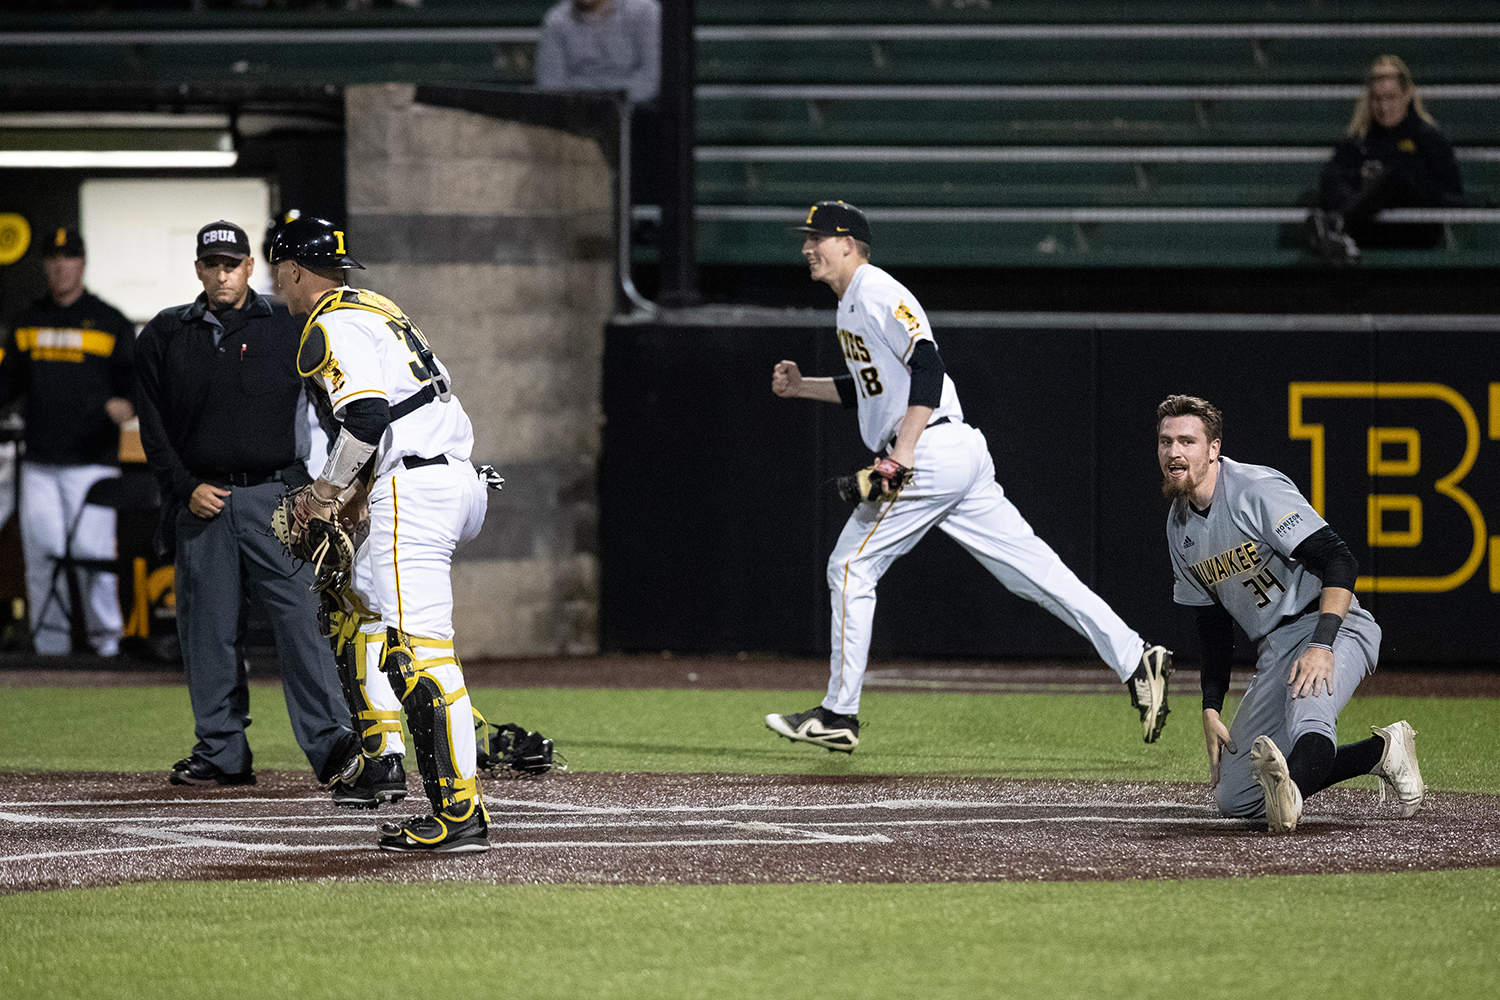 Milwaukee+catcher+Tyler+Bordner+shows+frustration+at+the+umpires+call+during+the+baseball+game+against+Iowa+at+Duane+Banks+Field+on+Tuesday%2C+April+23%2C+2019.+The+Hawkeyes+defeated+the+Panthers+5-4.